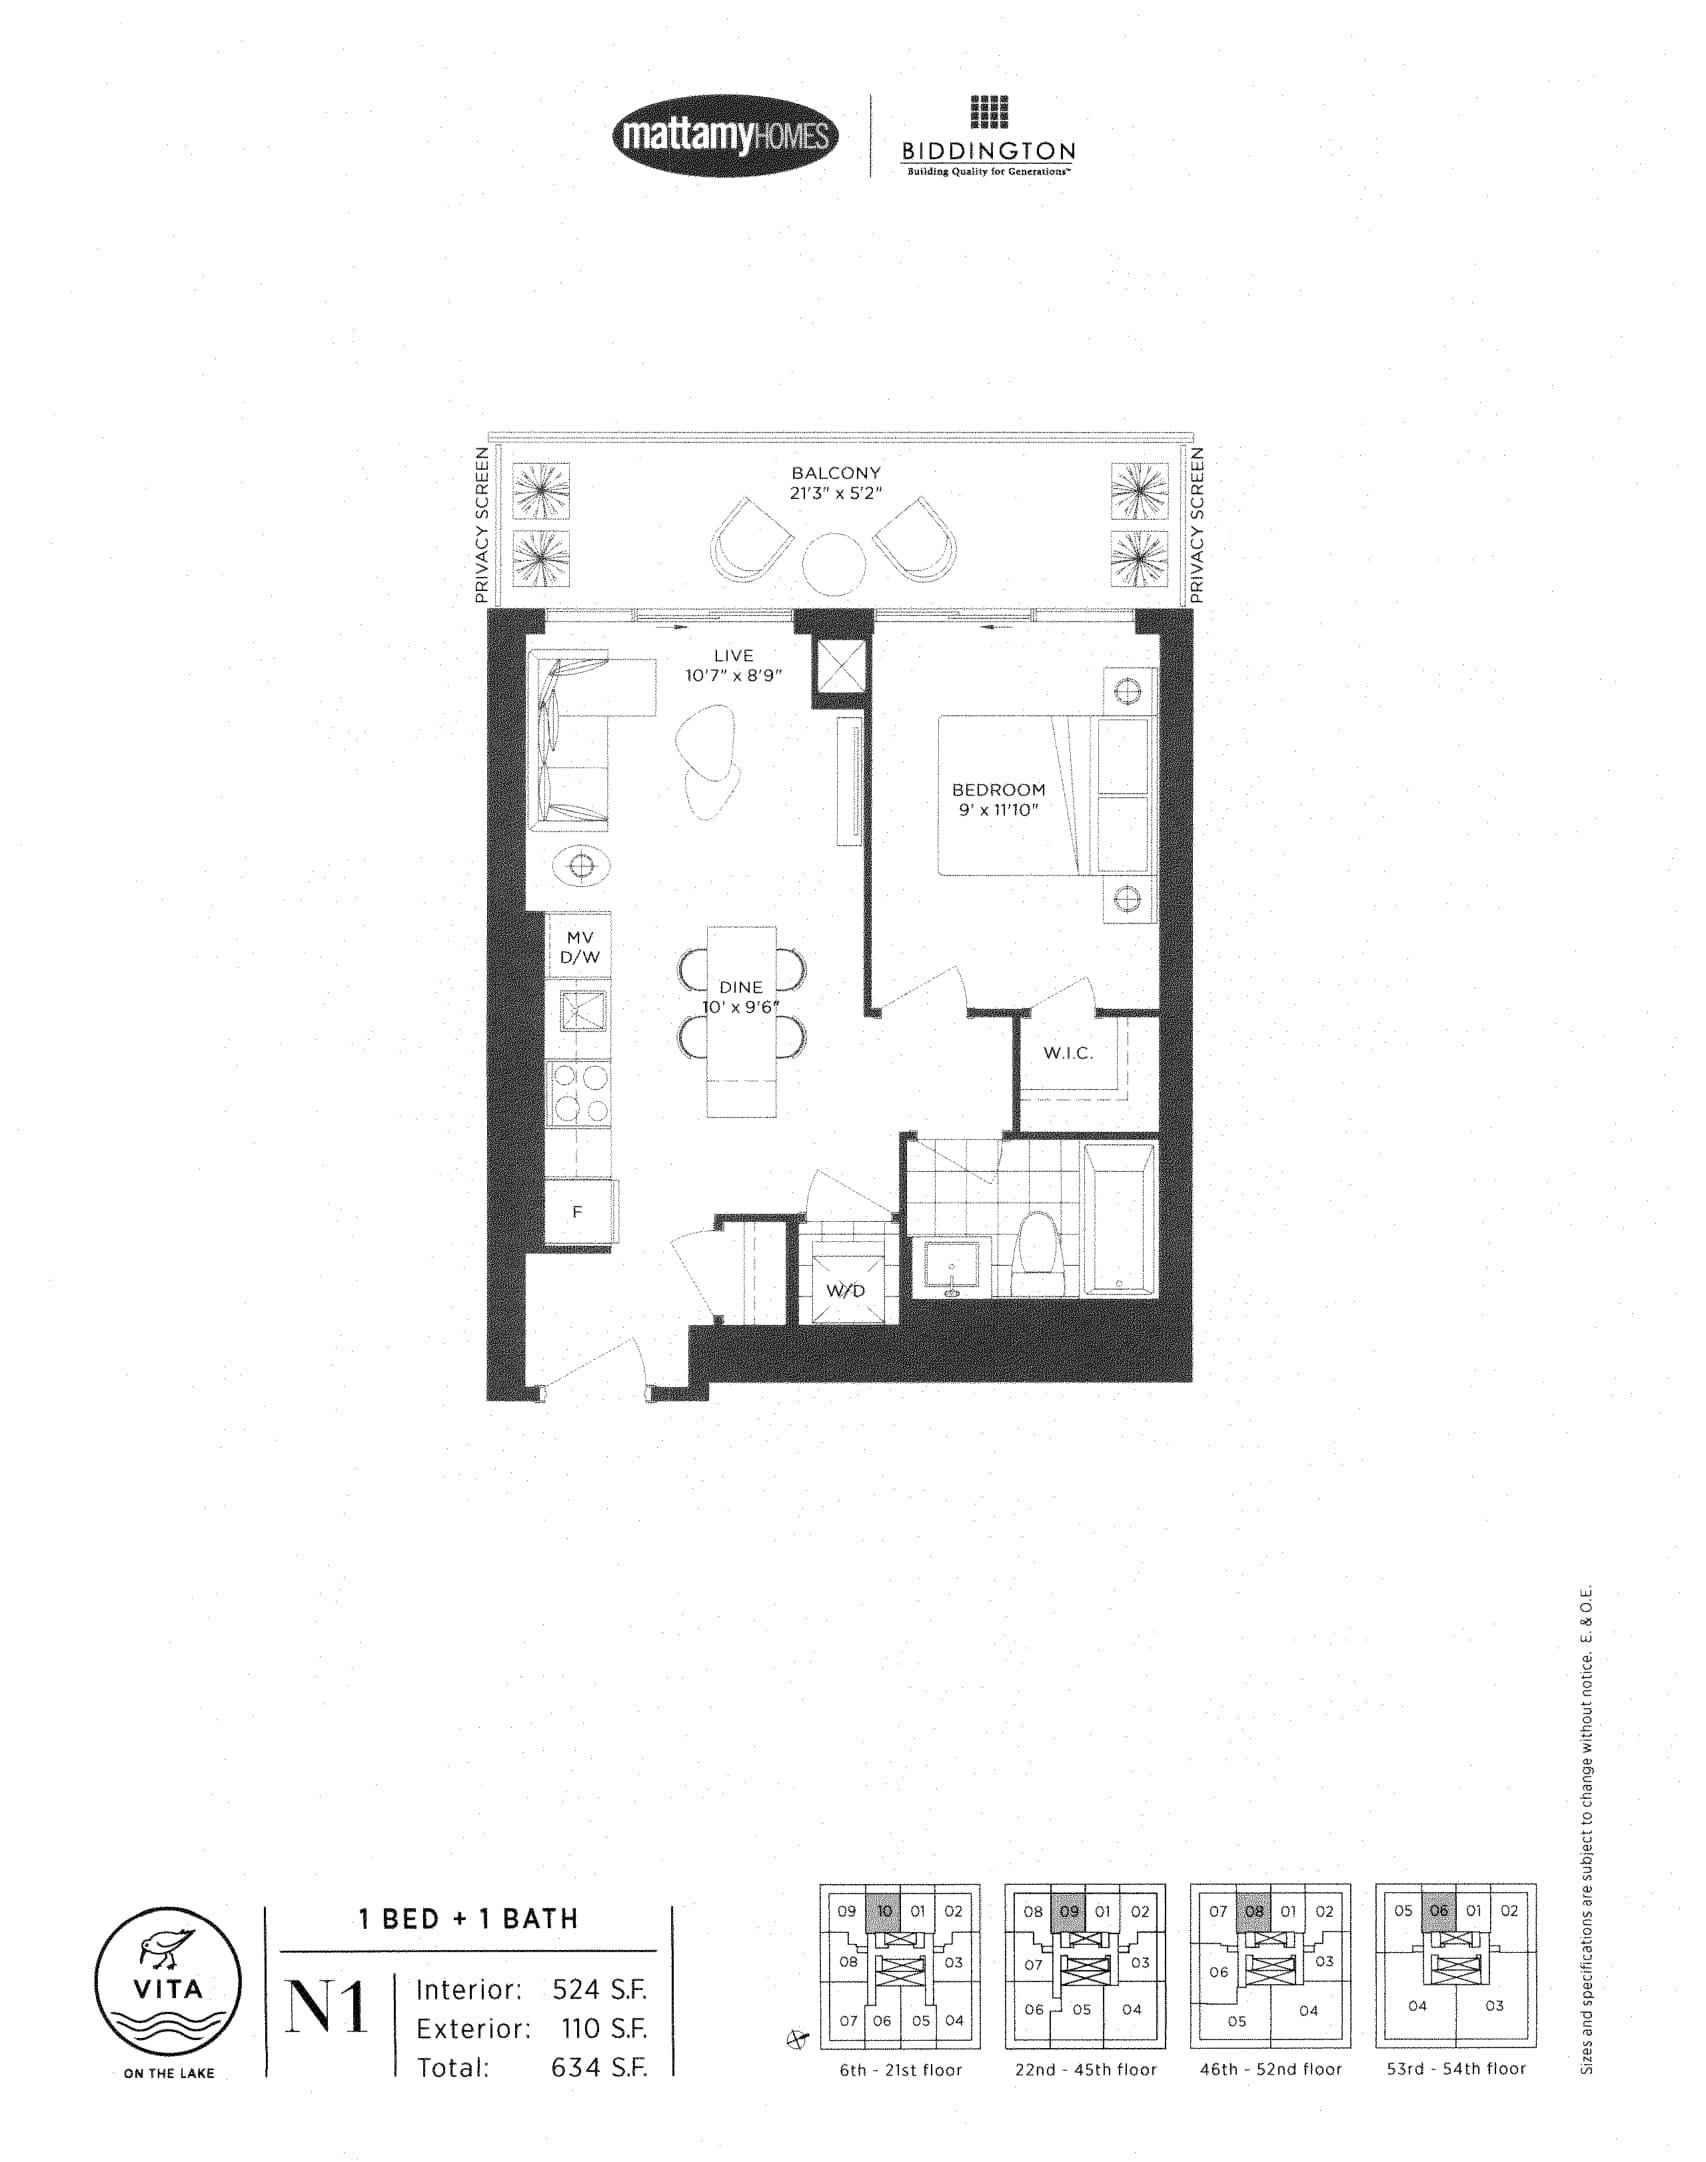 Vita on the lake pre construction etobicoke condosky for Condo plans free